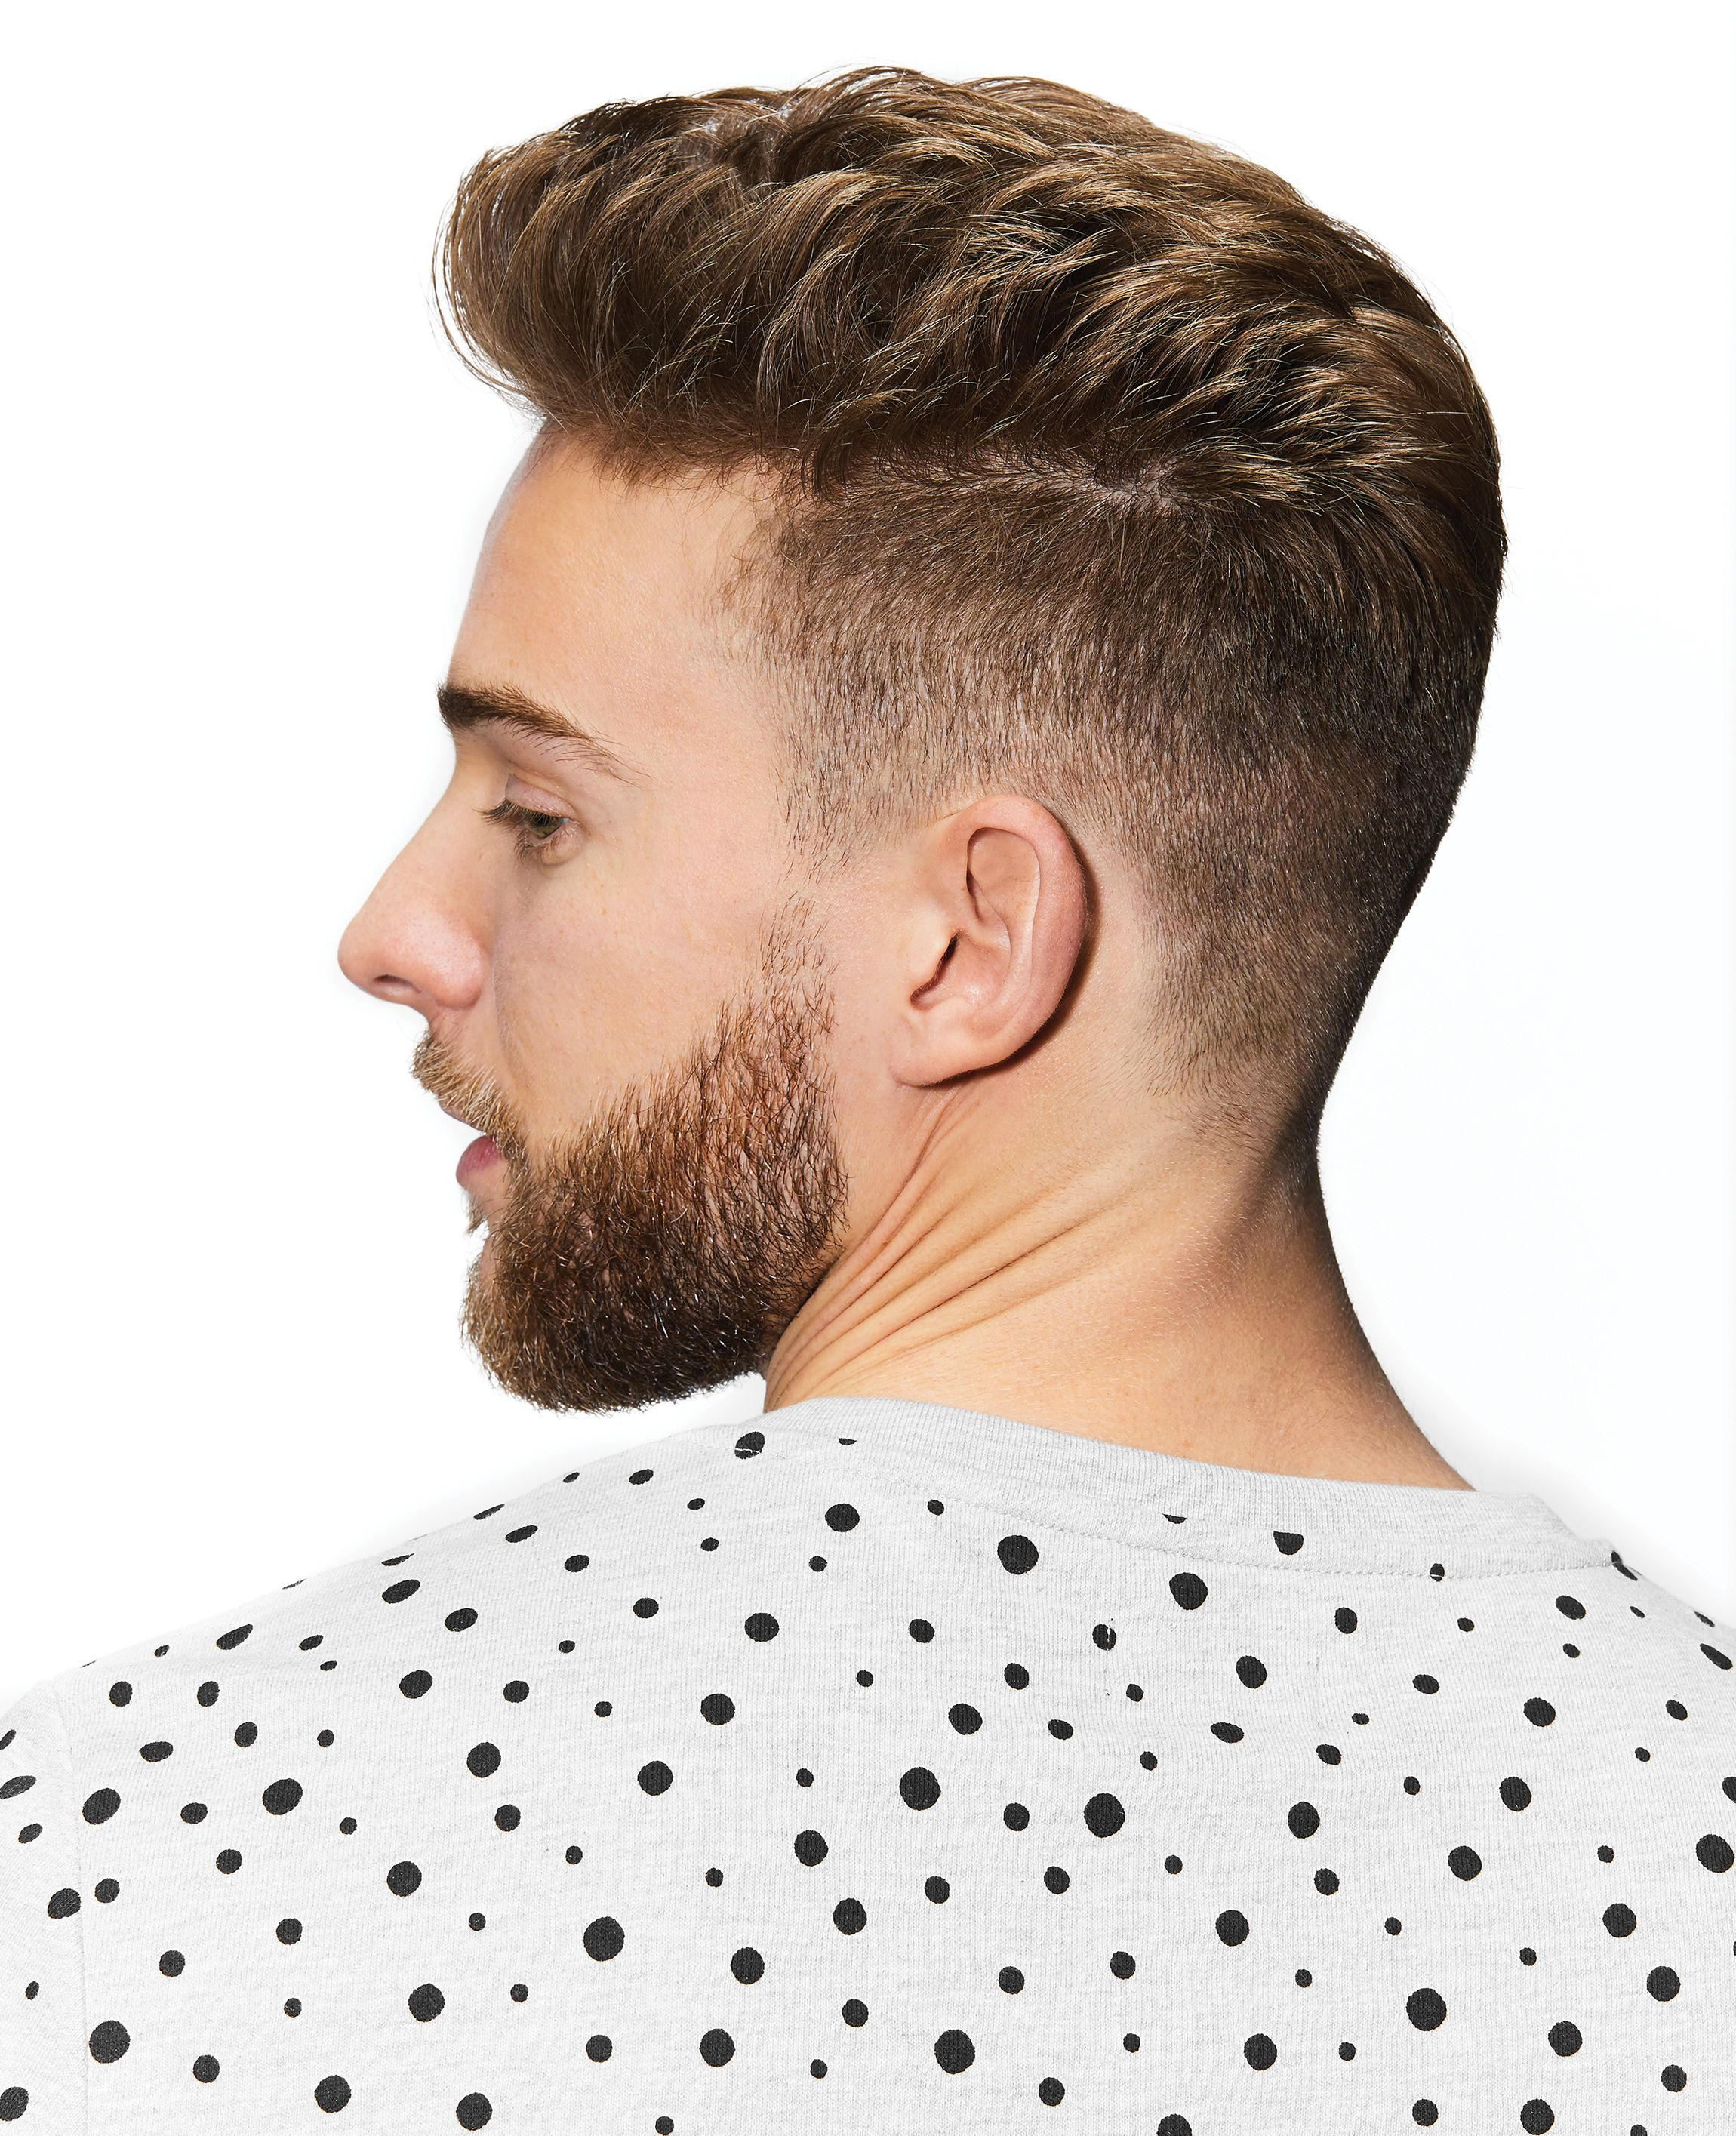 Brian Coupe Homme Degrade Americain Coiffure Homme Degrade Americain Coupe Cheveux Homme Degrade Coupe Homme Degrade